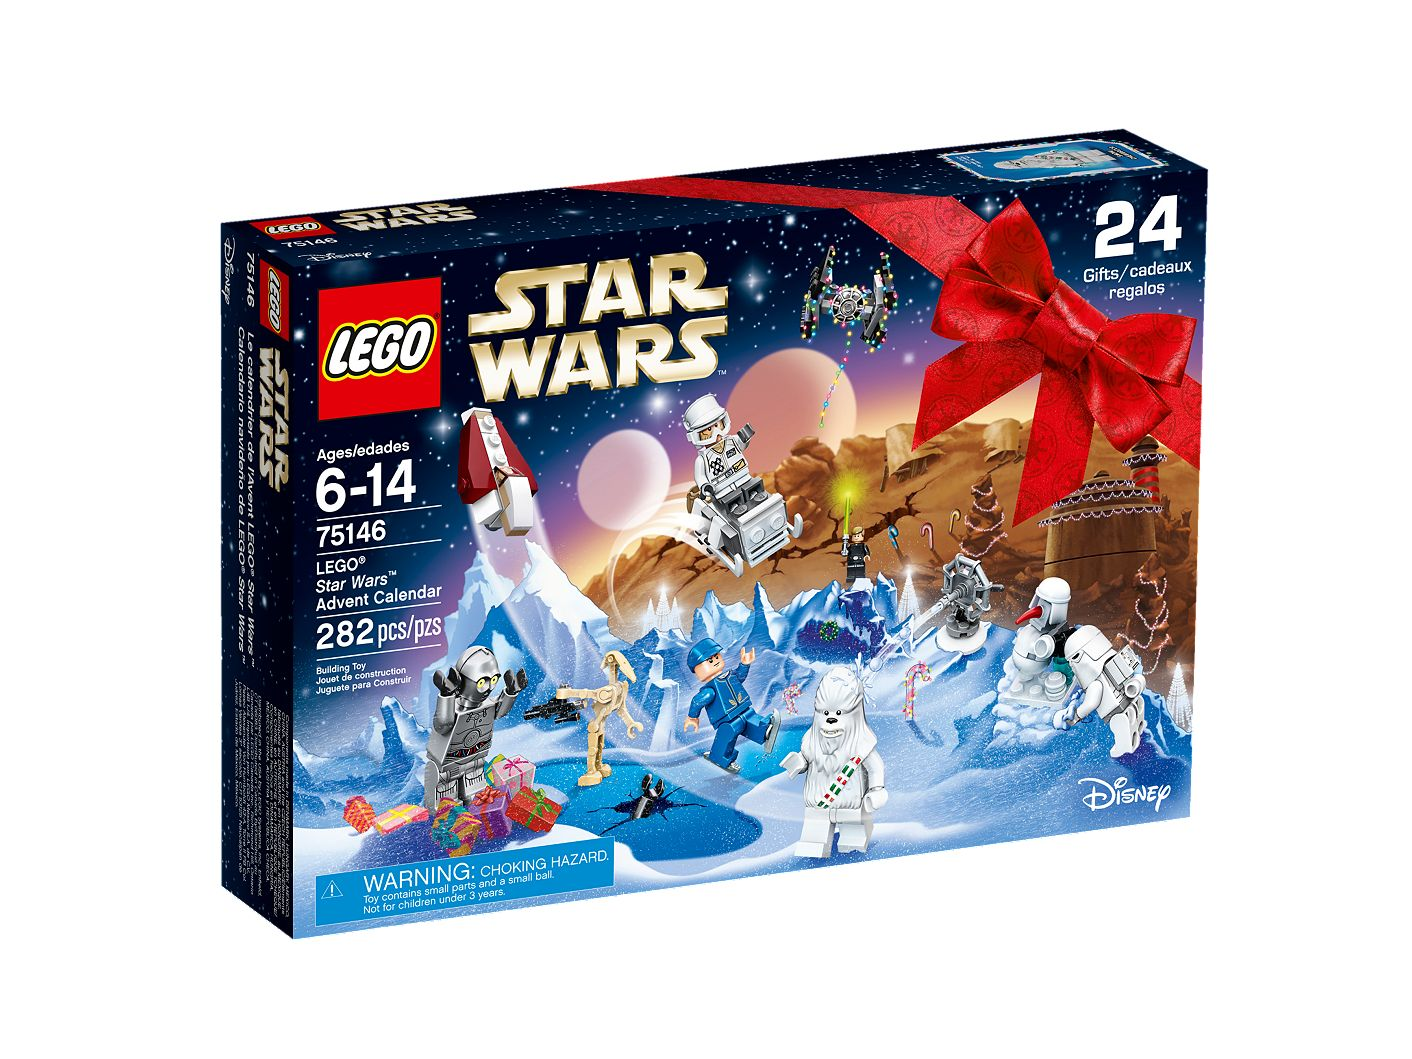 Calendrier Avent Lego Star Wars 2019.Lego Star Wars Advent Calendar 75146 Star Wars Buy Online At The Official Lego Shop De